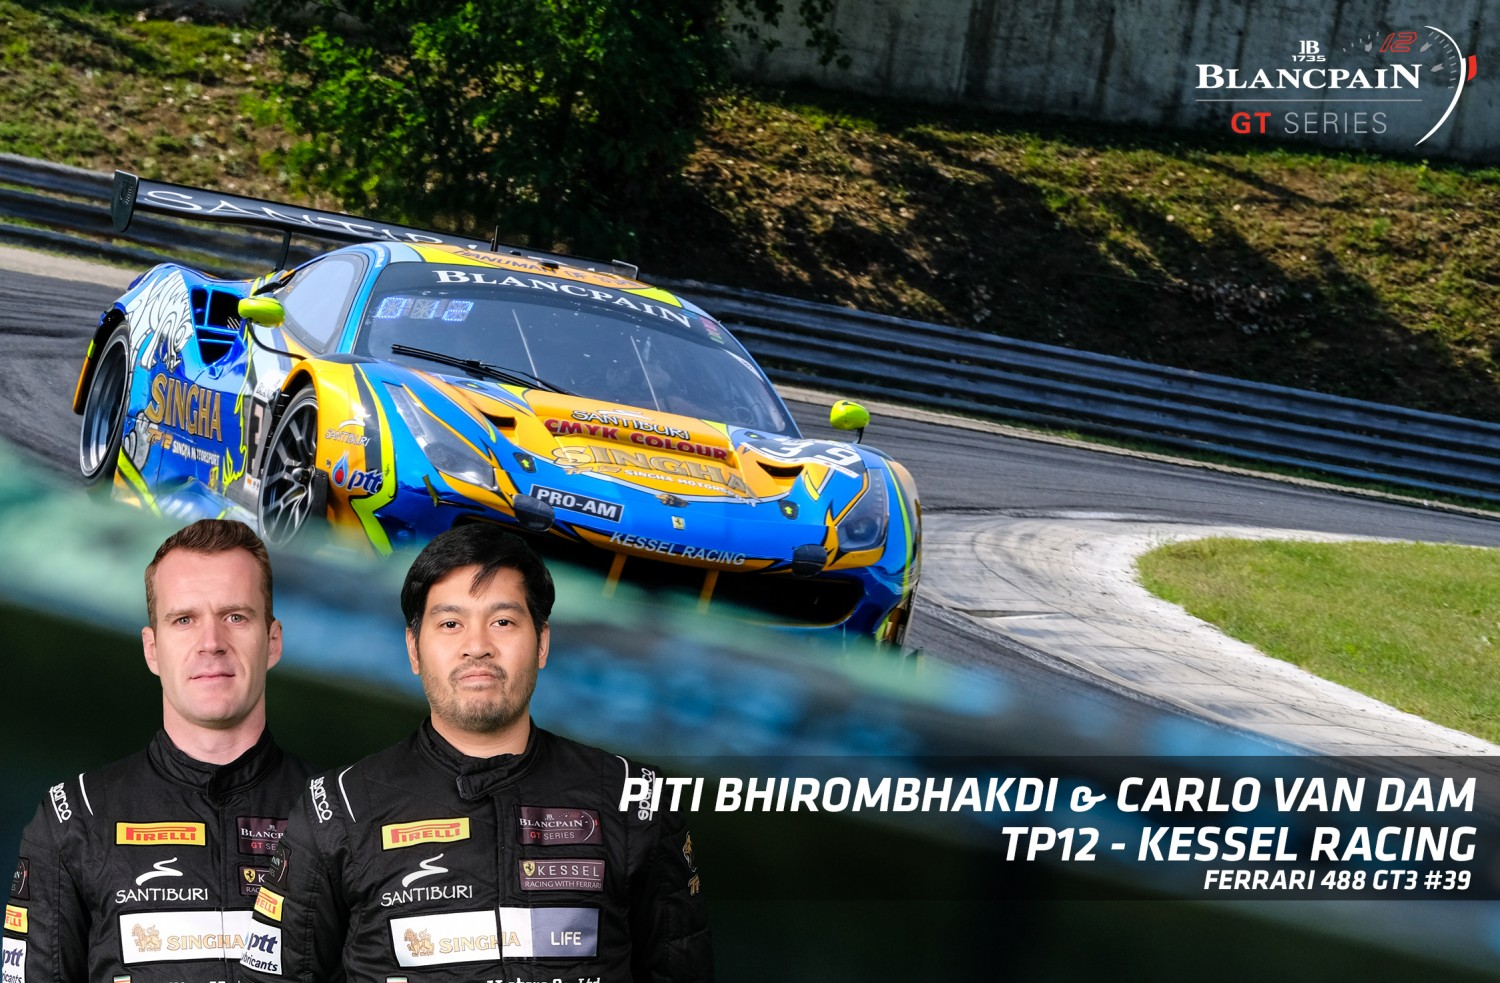 IN PROFILE: Piti Bhirombhakdi and Carlo Van Dam prepare for Pro-Am showdown